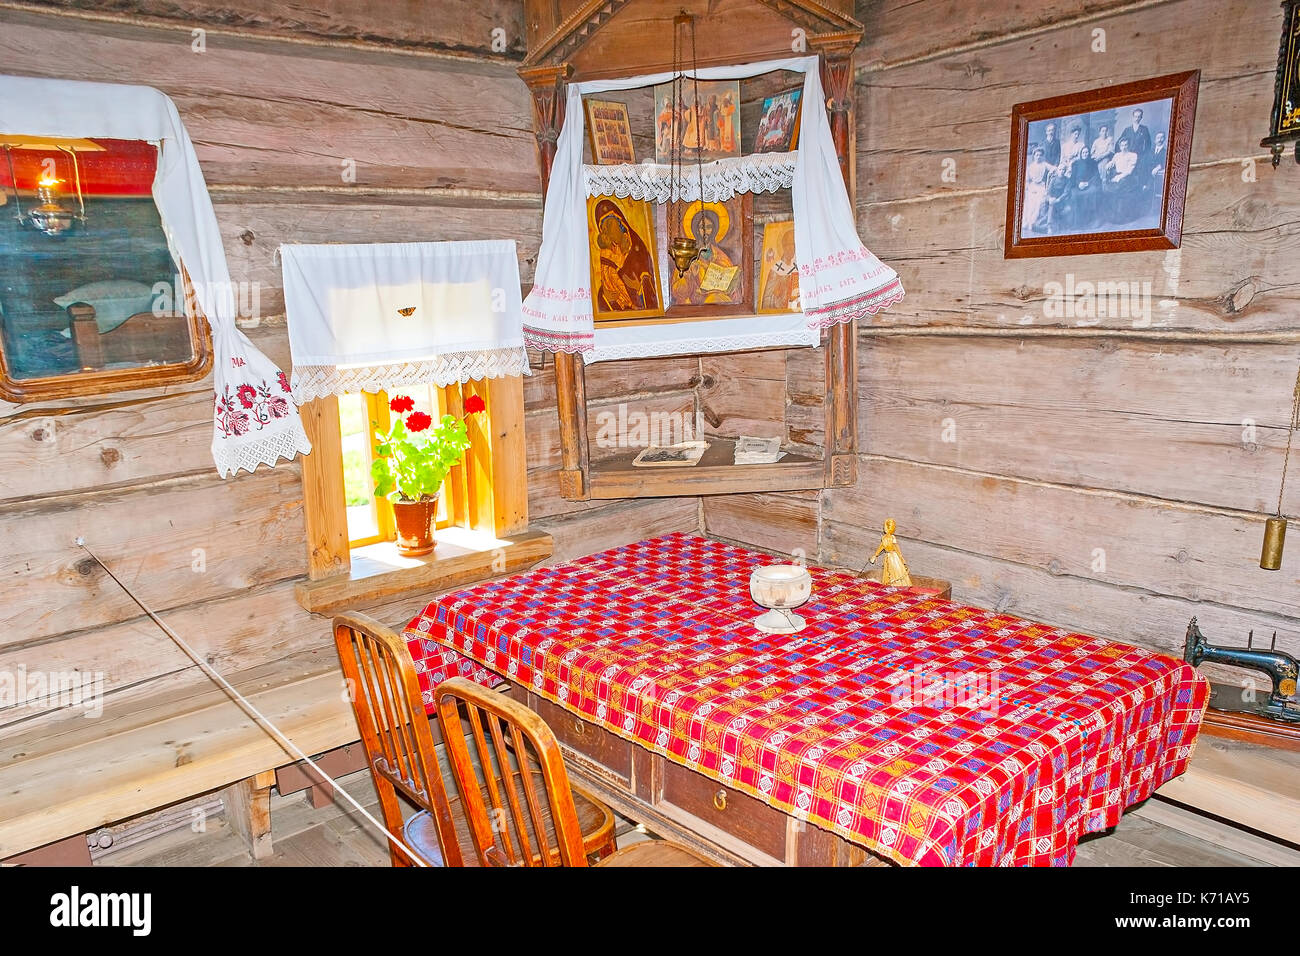 SUZDAL, RUSSIA - JULY 1, 2013: The chamber in old timbered izba of Museum of Wooden Architecture and Peasant Life - the icon in corner over the table, - Stock Image